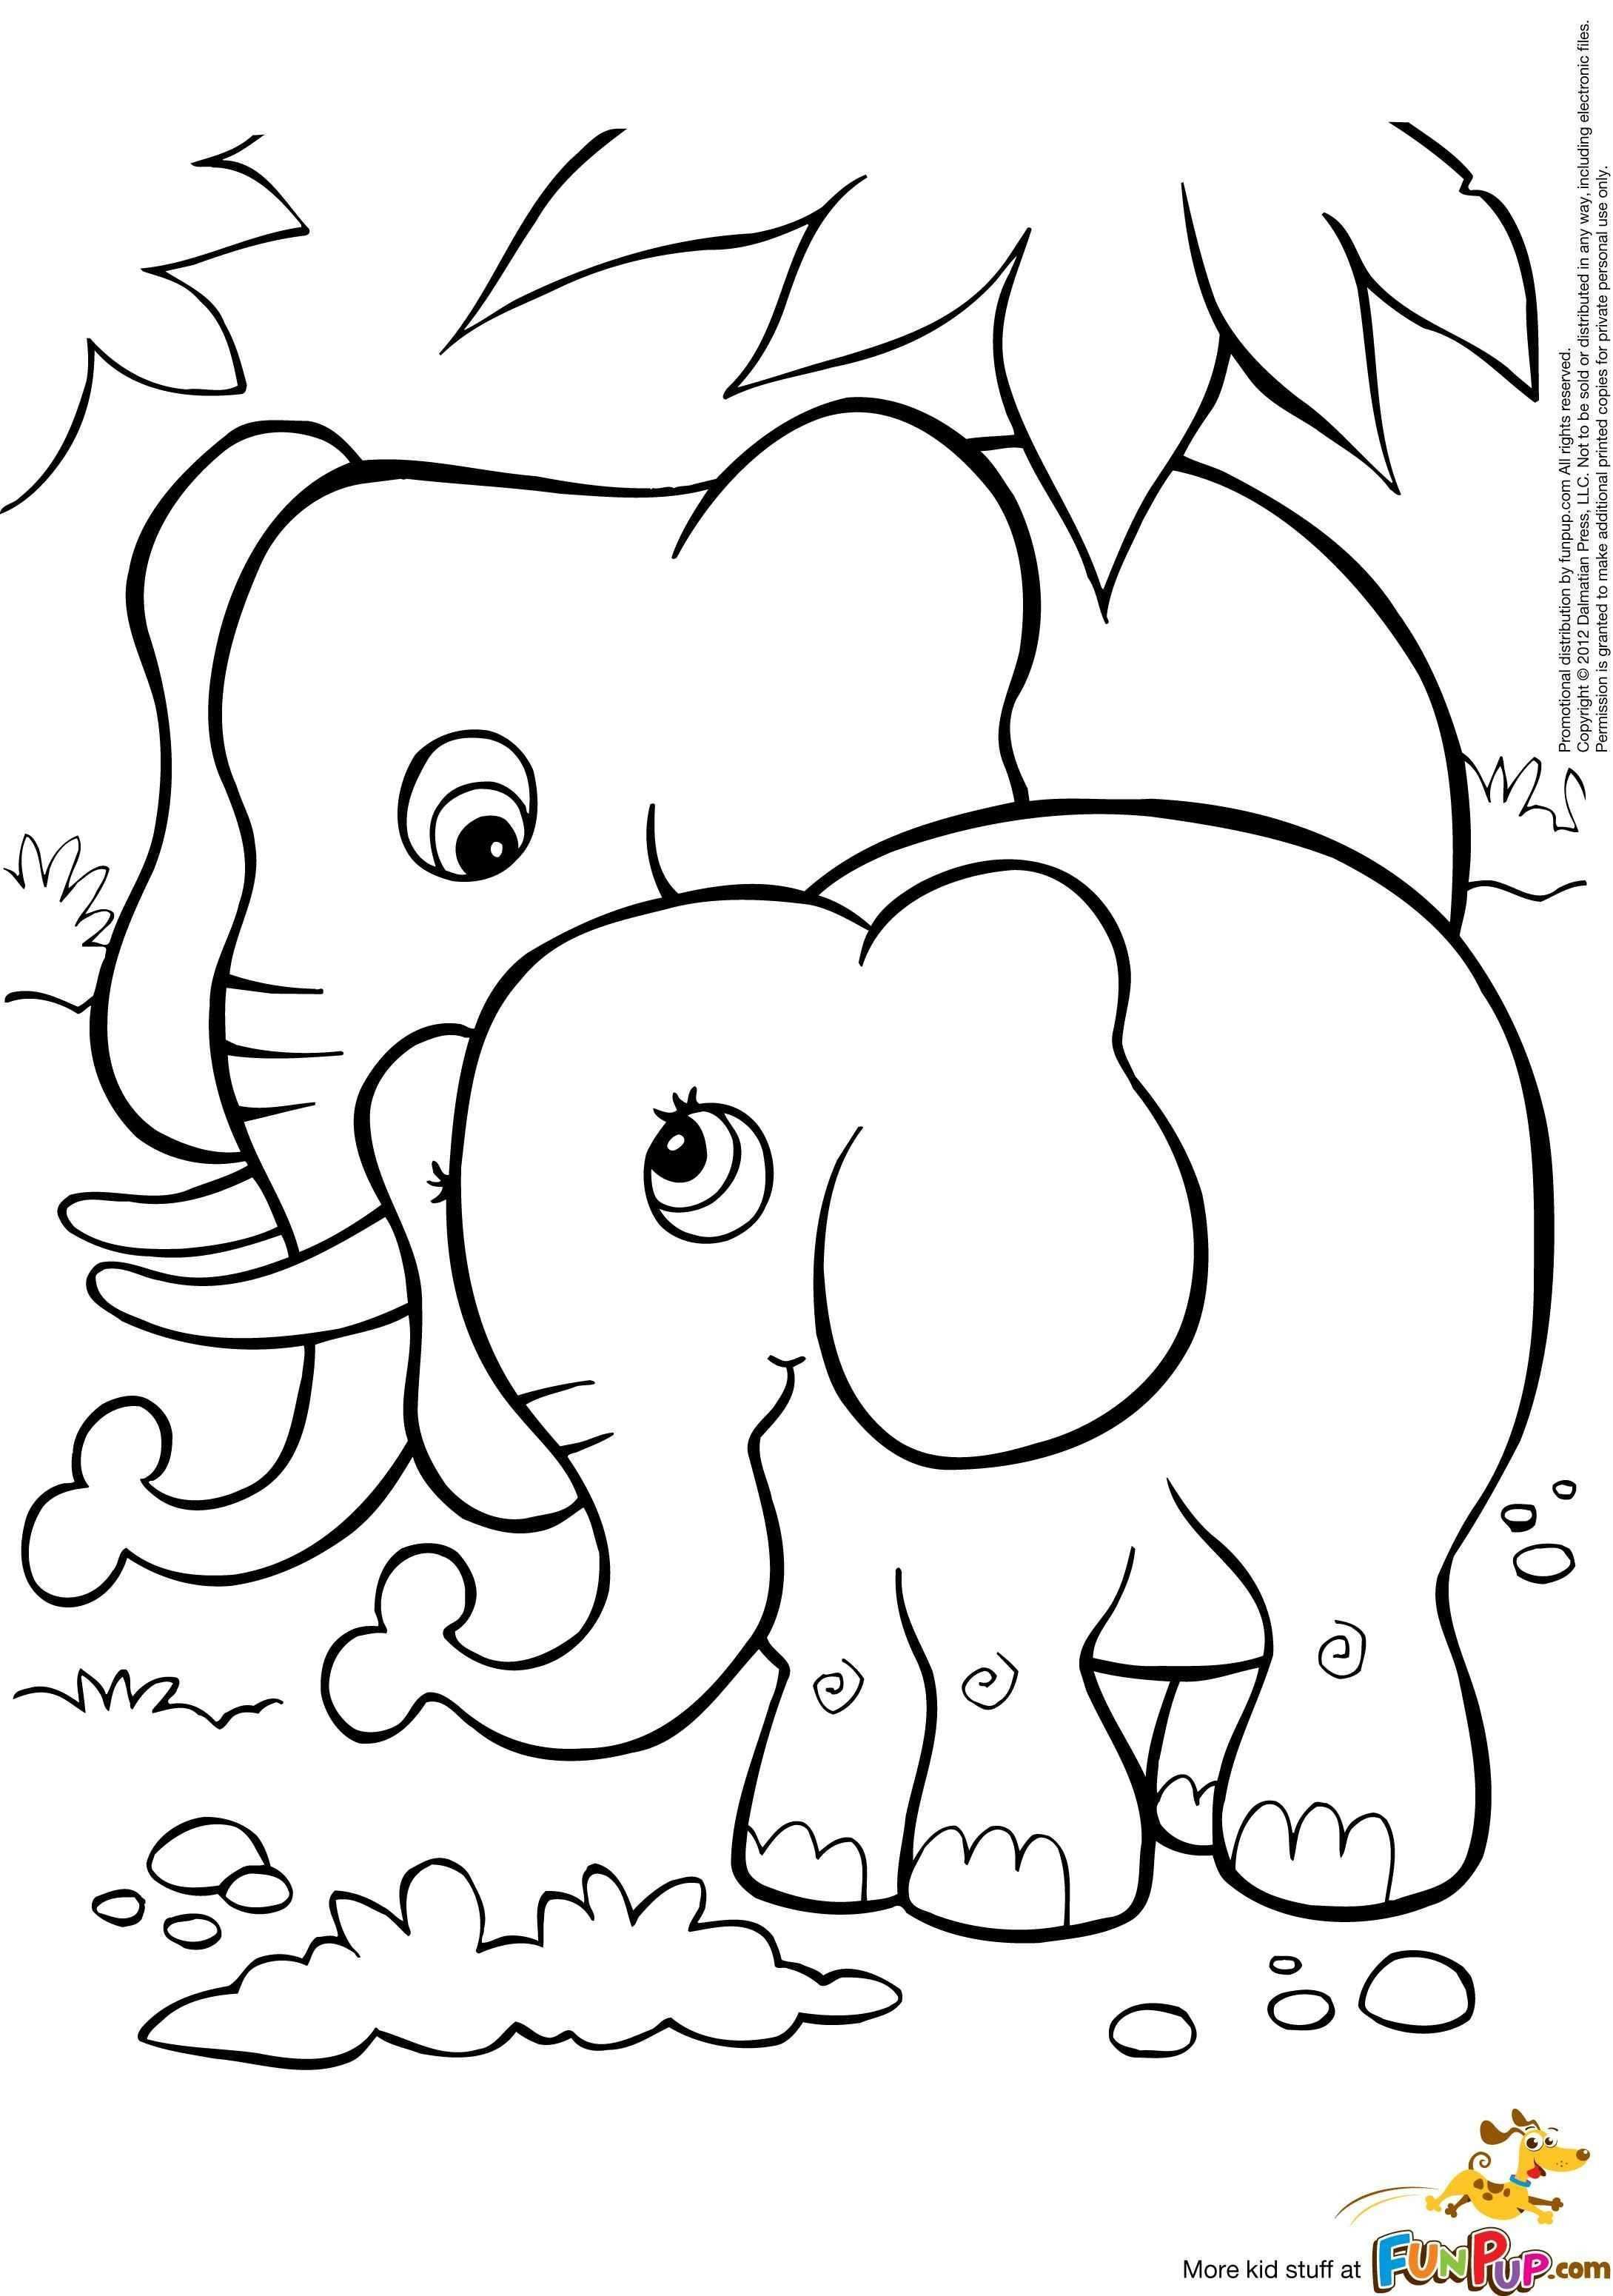 Coloring Pages For Kids Elephant Fun Stuff To Color Beautiful Fresh